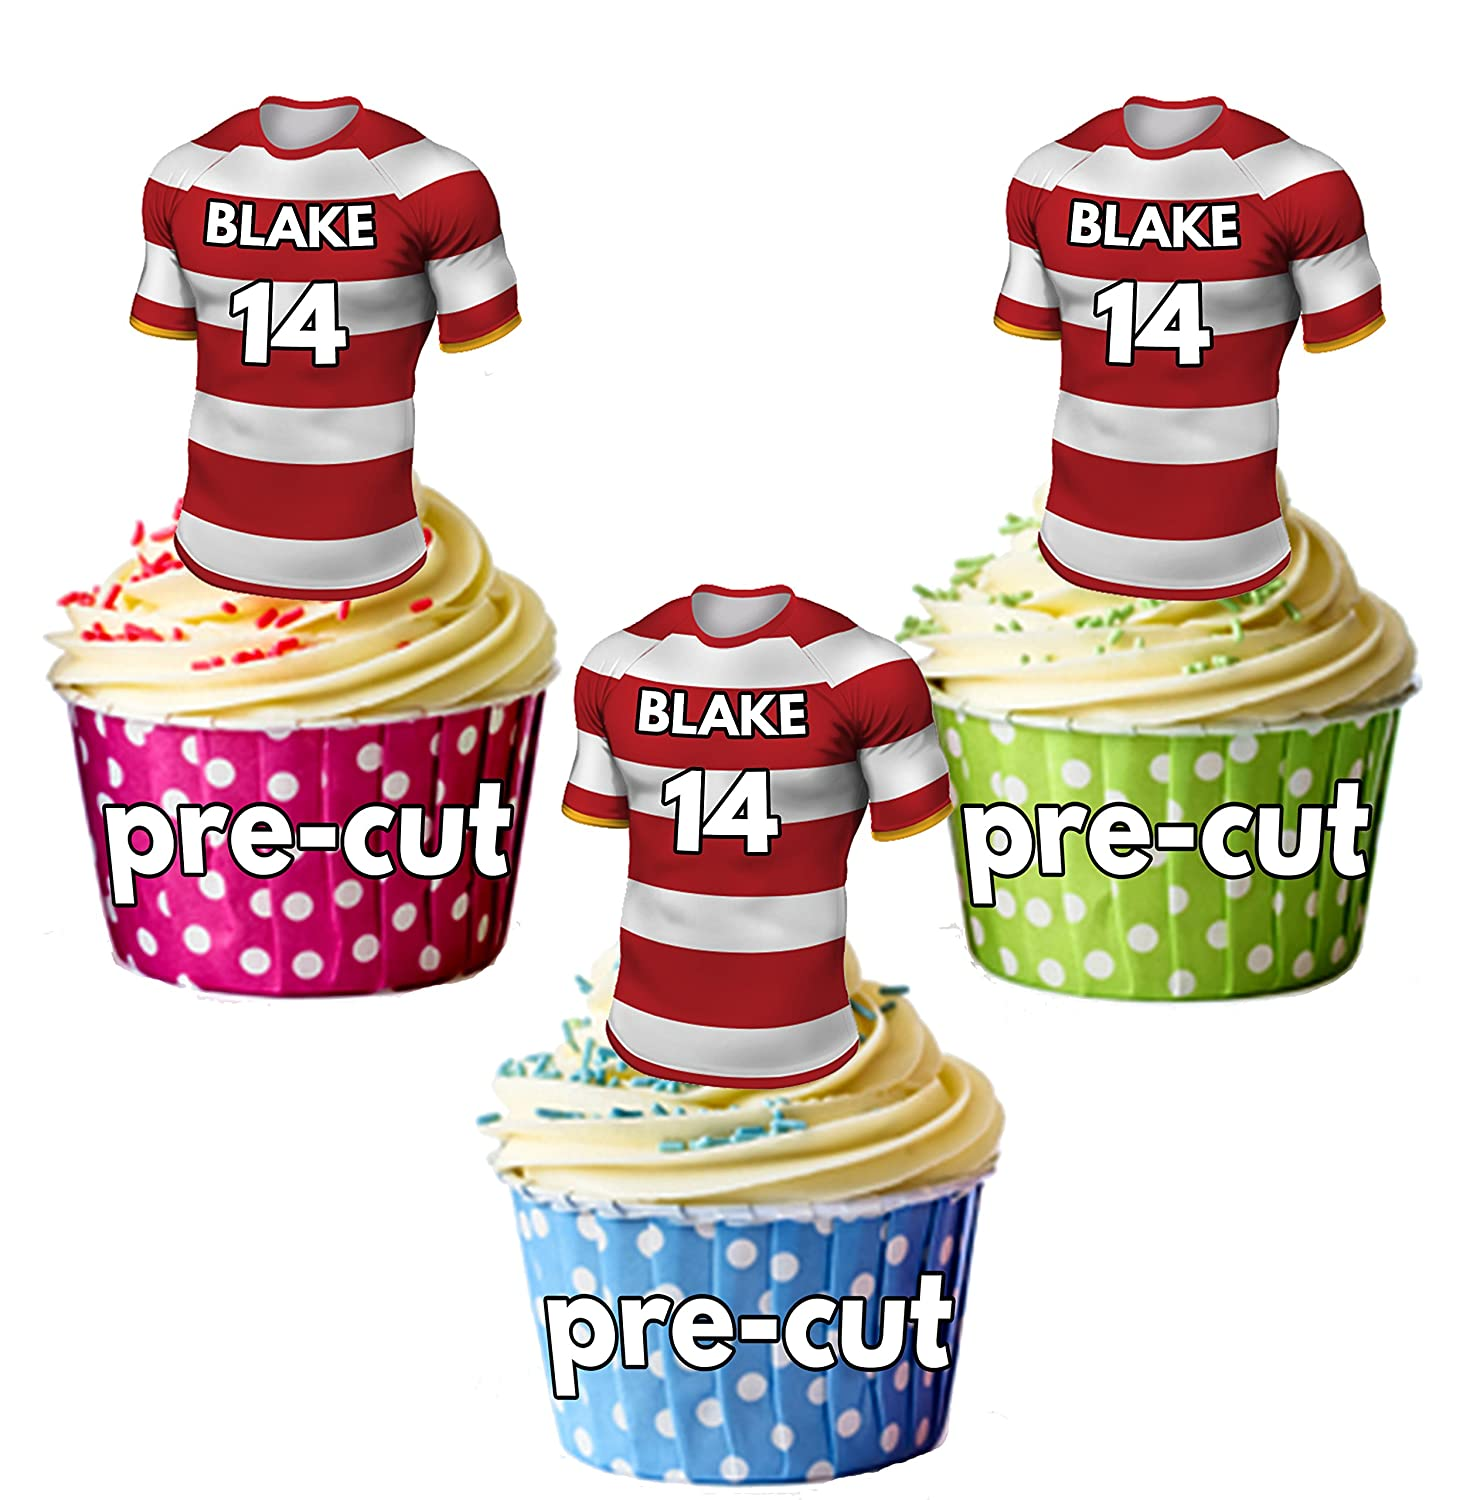 AK Giftshop PRECUT Personalised Rugby Shirts With Your Chosen NAME & NUMBER - Edible Cupcake Toppers/Cake Decorations Wigan Colours (Pack of 12)